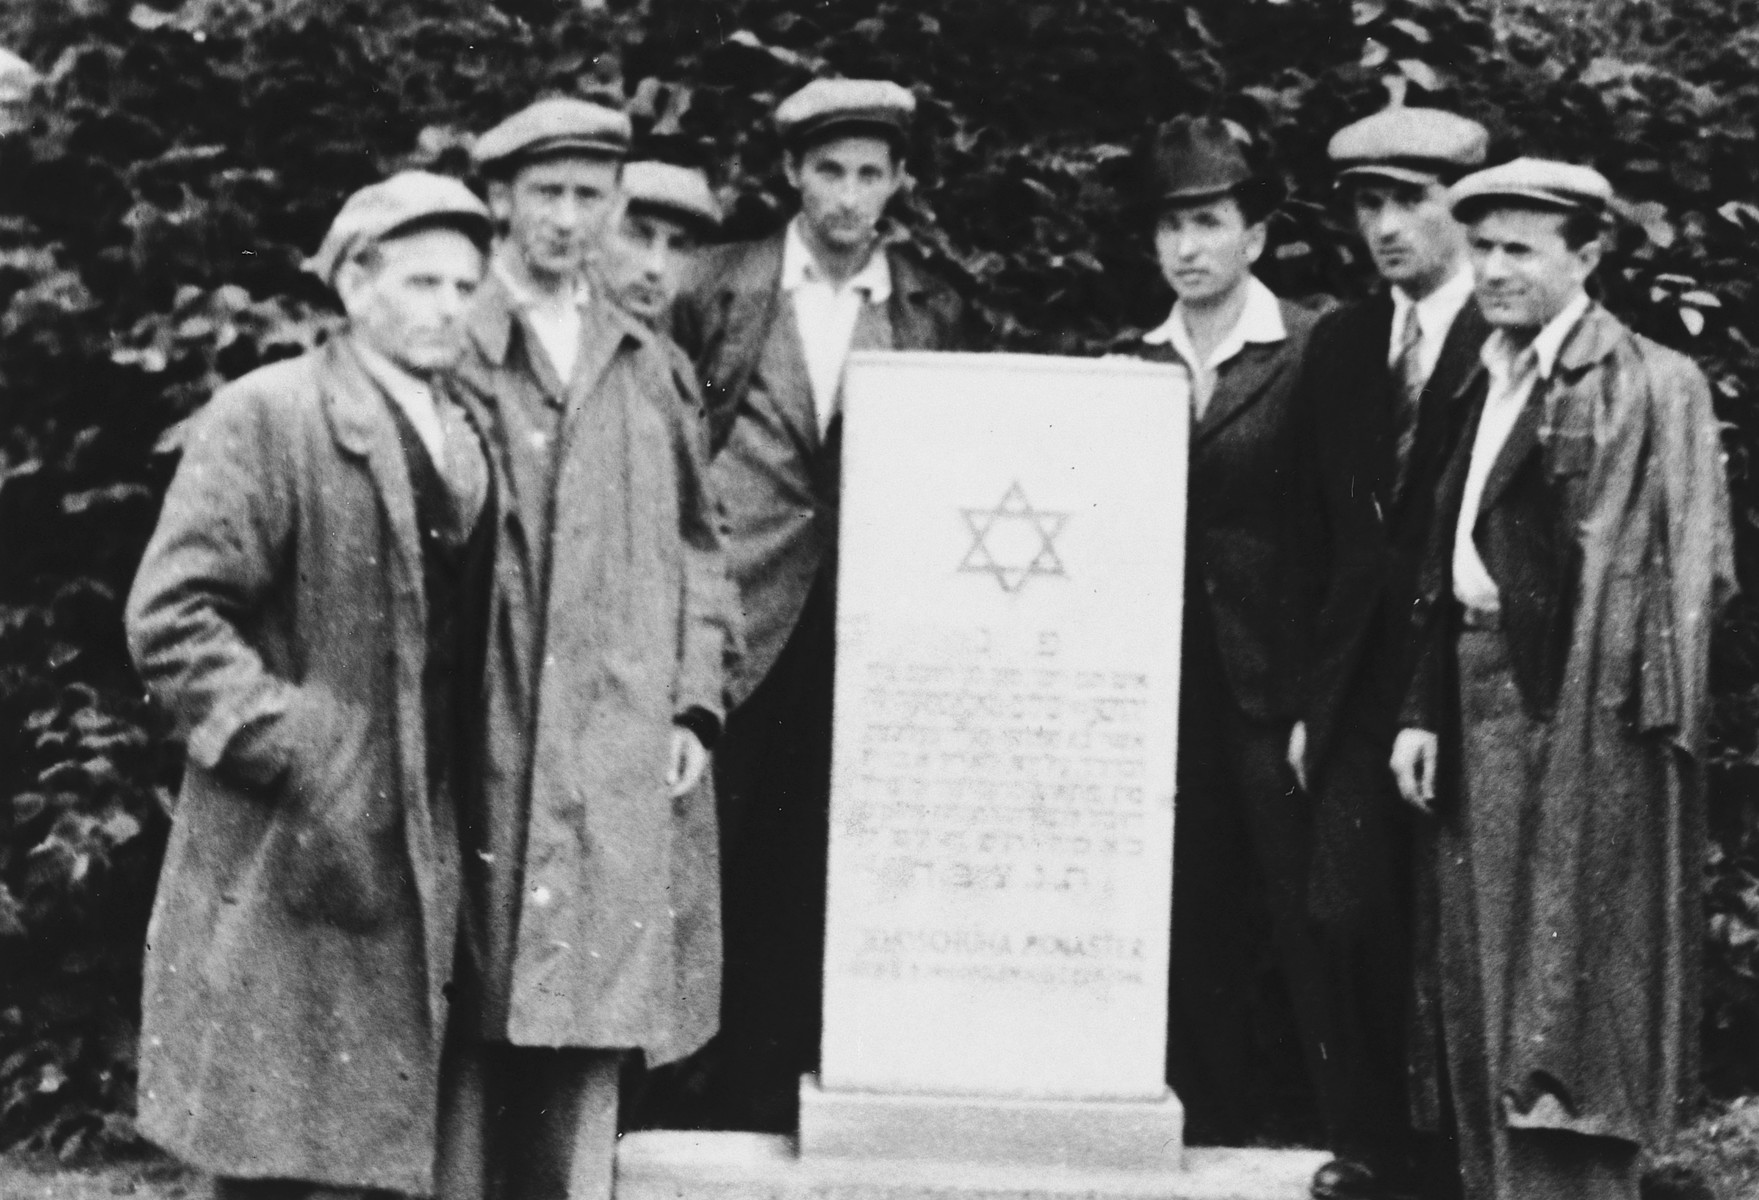 Seven Jewish DPs pose next to a memorial to the victims of the Holocaust.